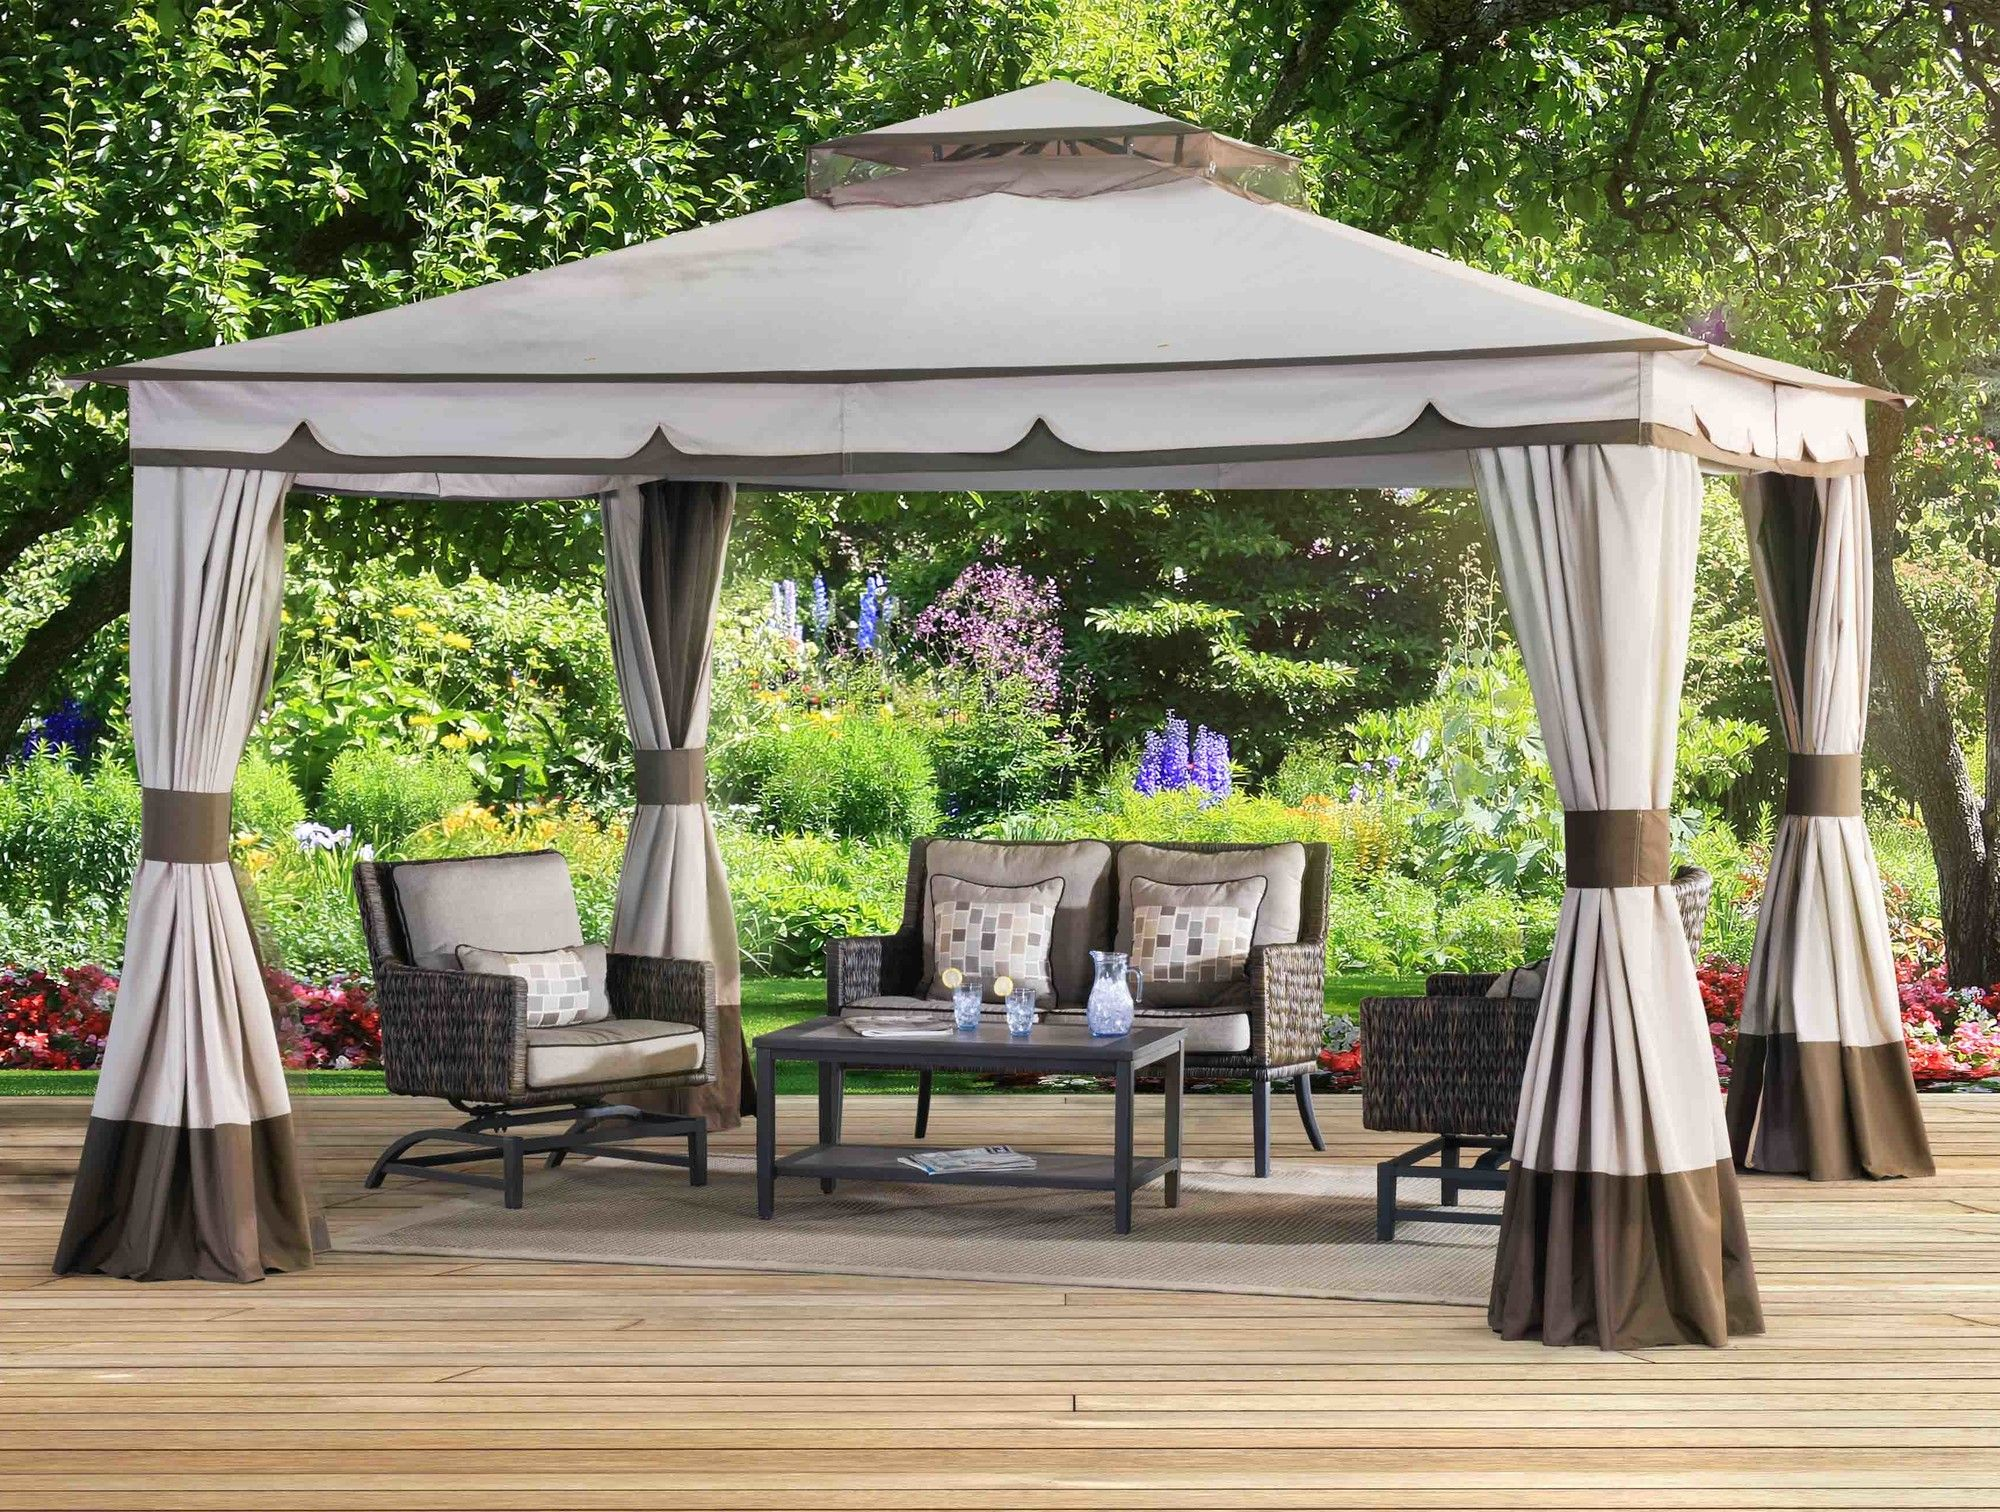 Sunjoy 10 Ft W X 12 Ft D Gazebo Patio Gazebo Pergola Patio Backyard